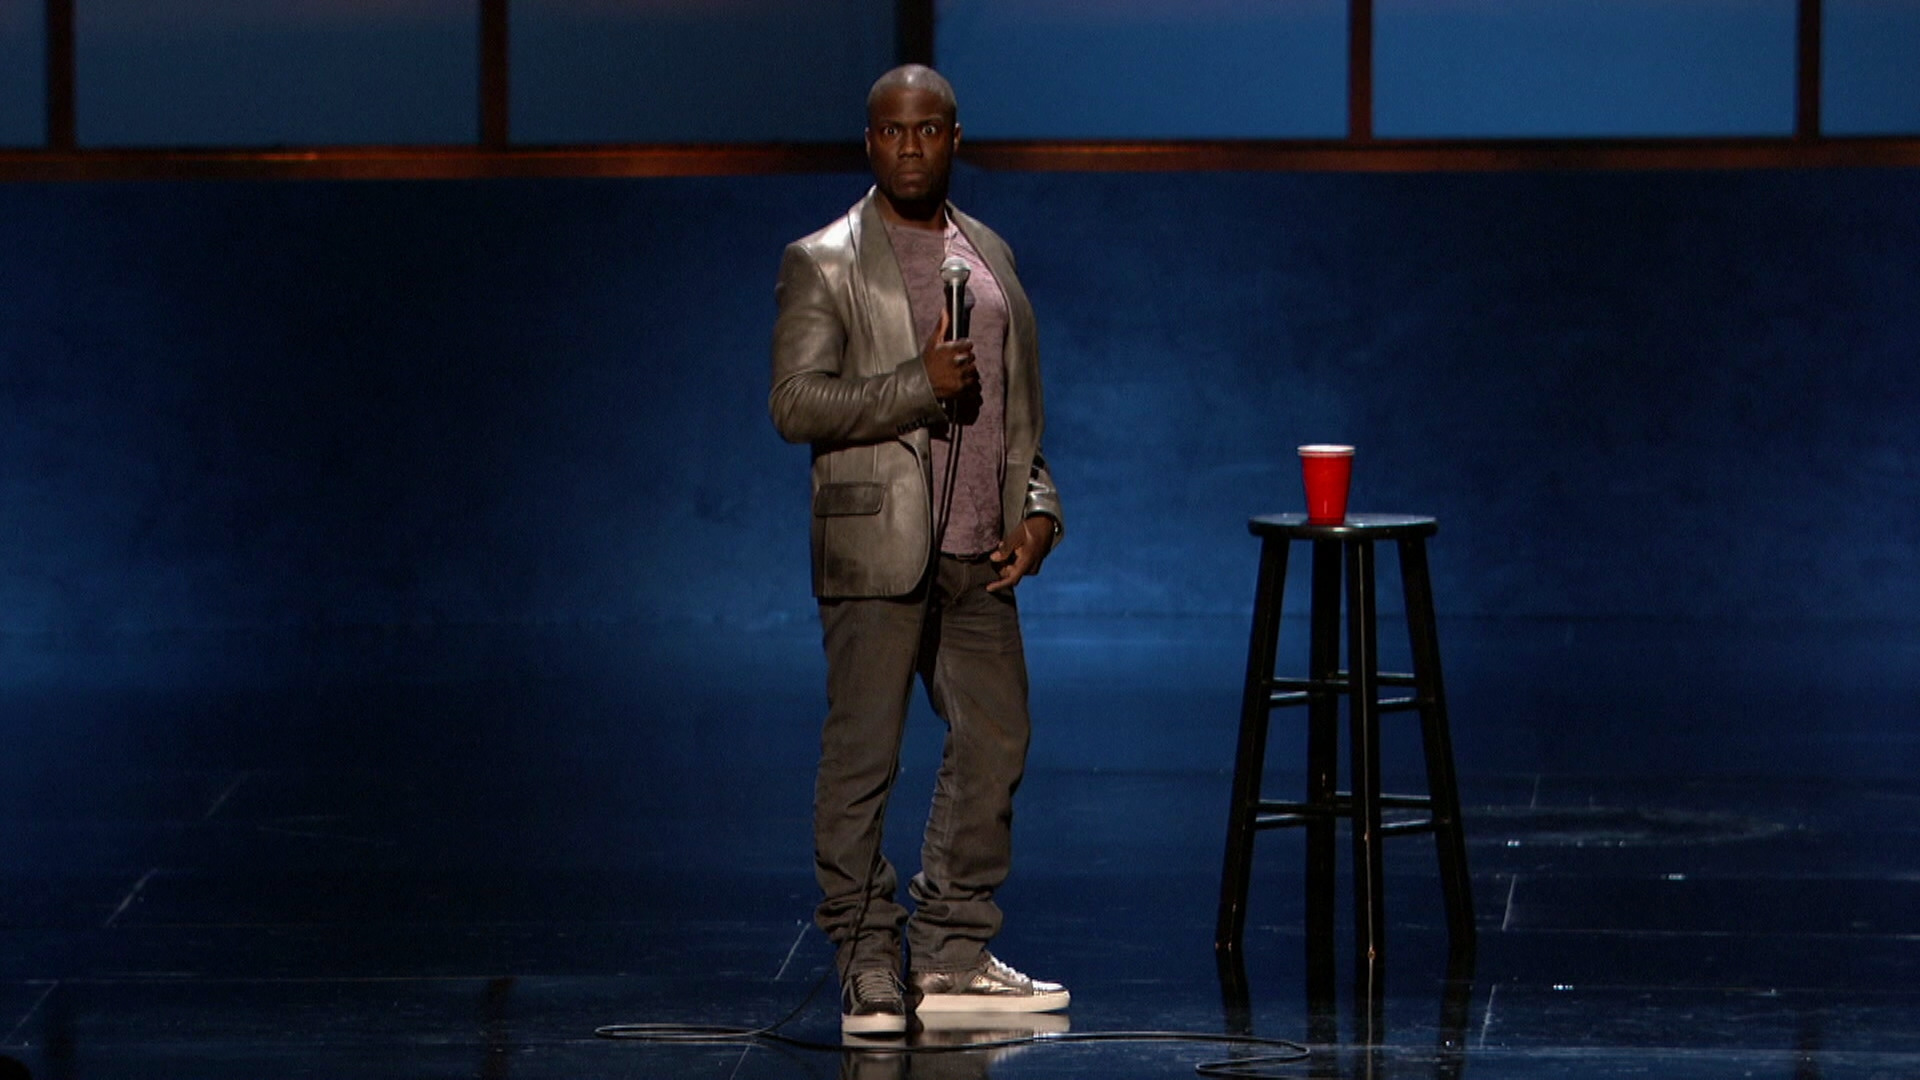 Uncensored - Kevin Hart - Almost Lost You Today